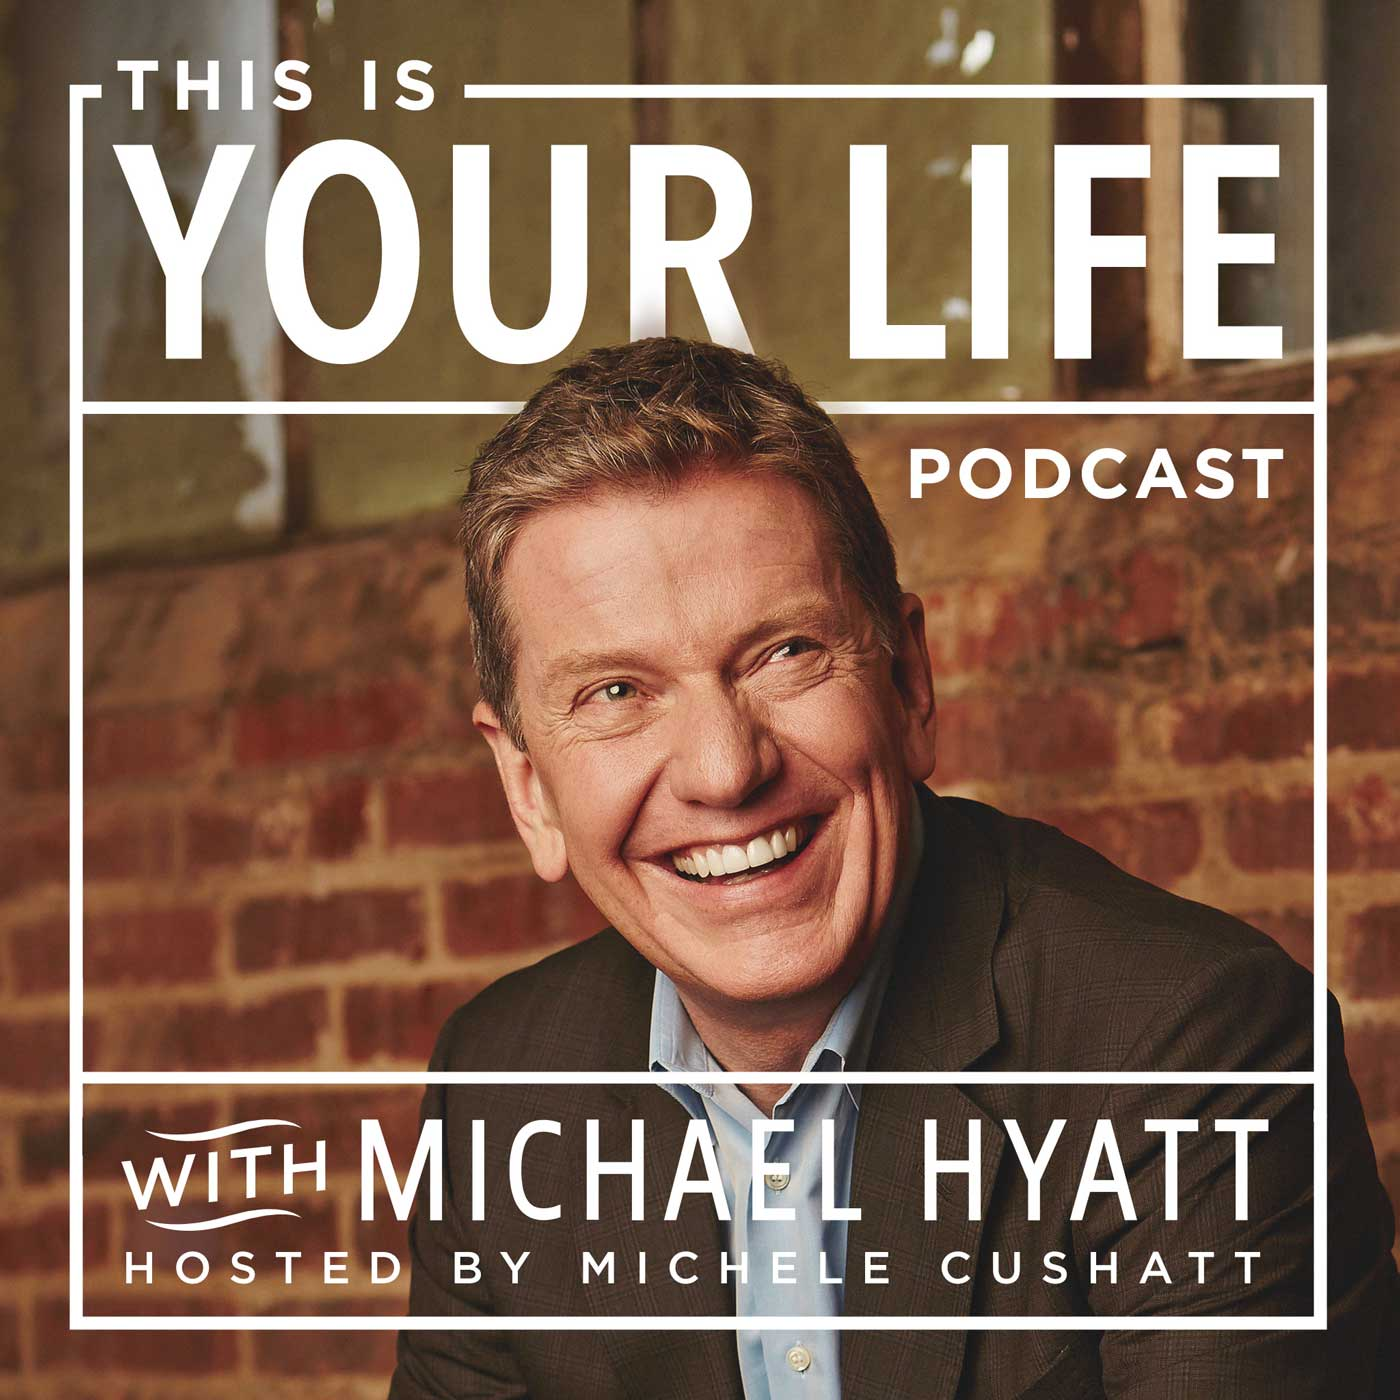 This Is Your Life with Michael Hyatt